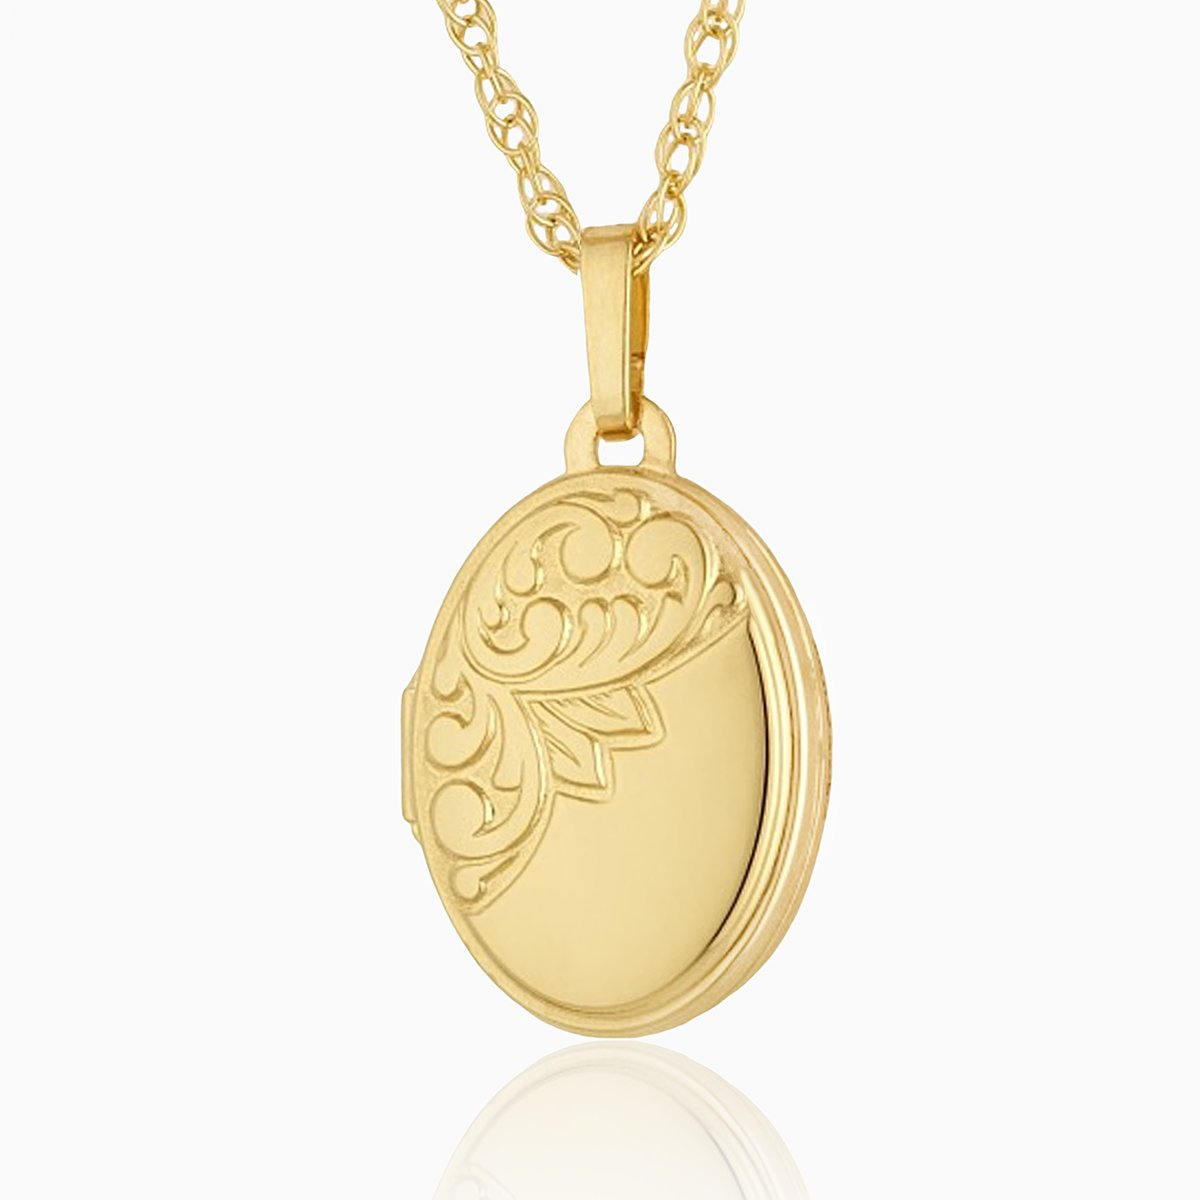 Product title: Petite Oval Leafy Locket, product type: Locket